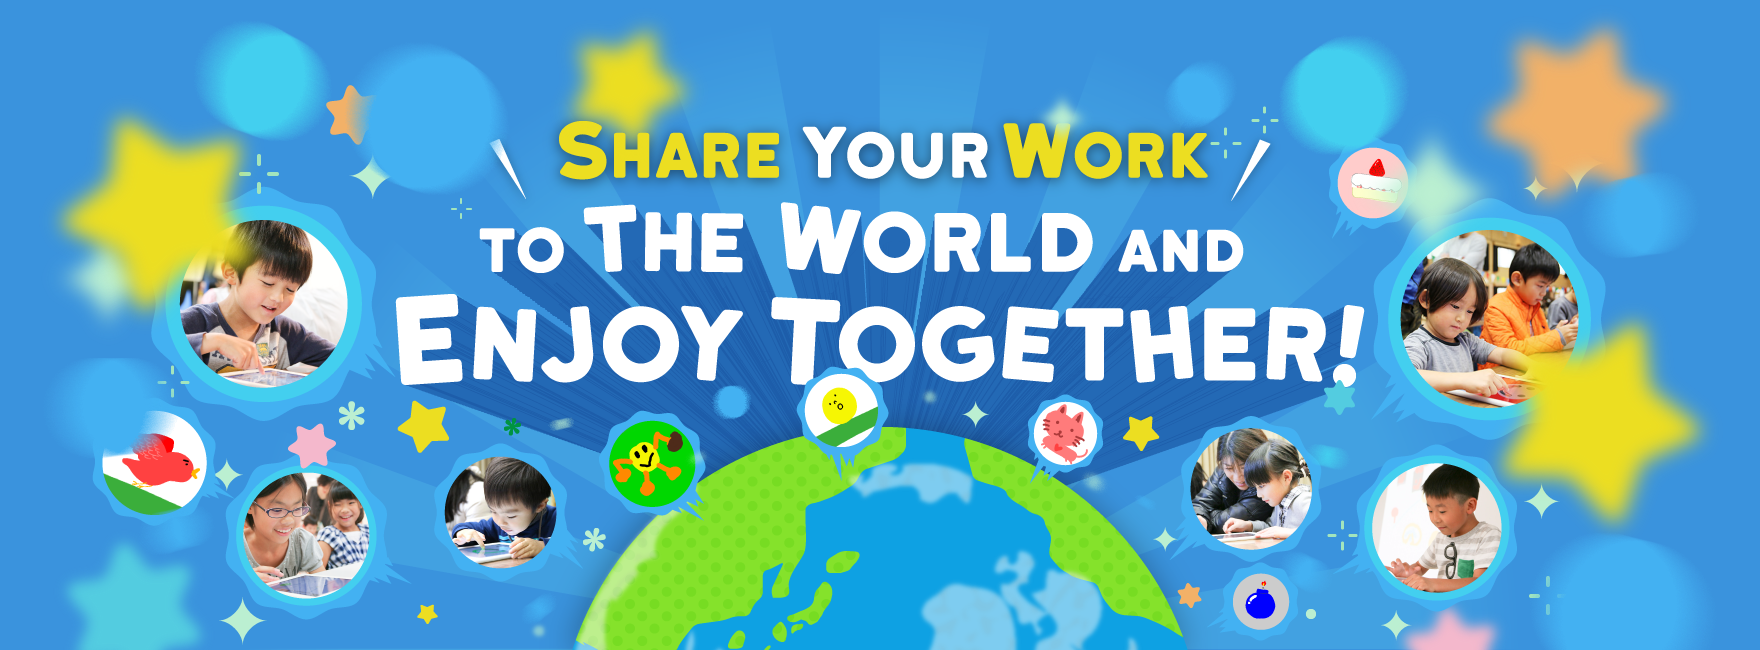 Share your Work with everyone and Let's make the world more fun!